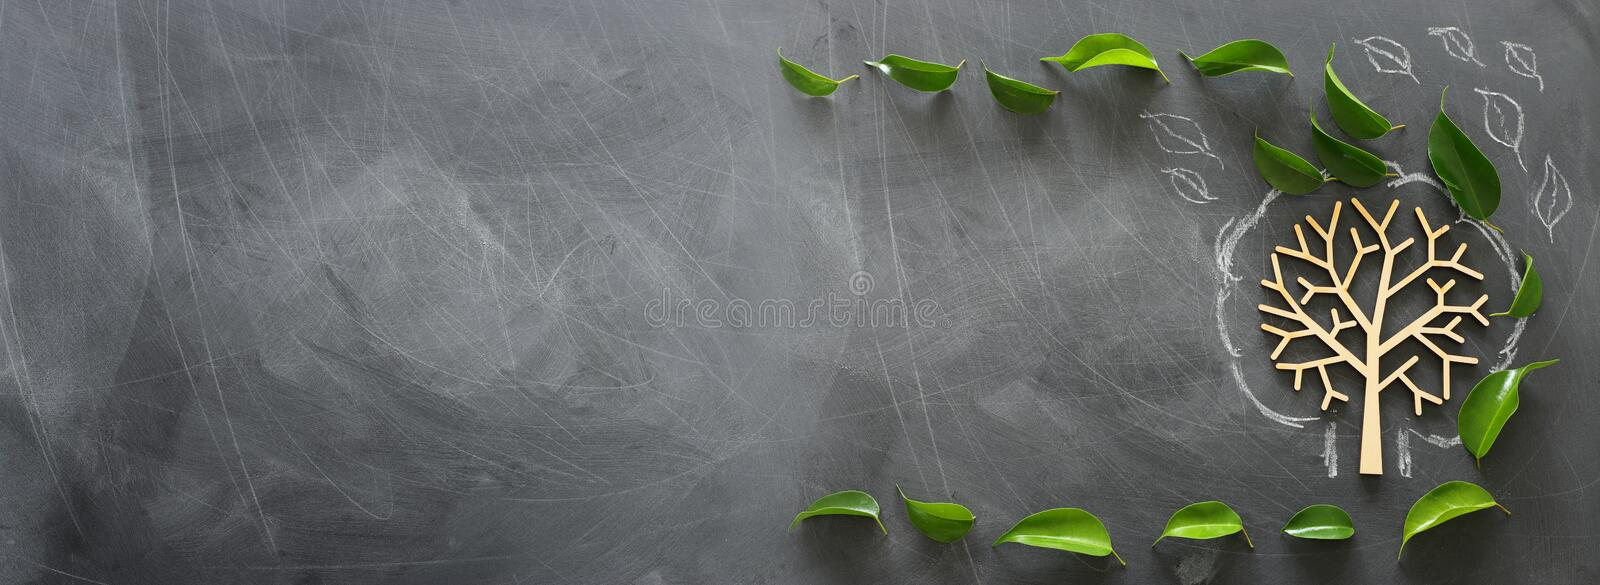 Education and business concept. Top view banner of wooden tree and green leaves over classroom blackboard background.  royalty free stock photo